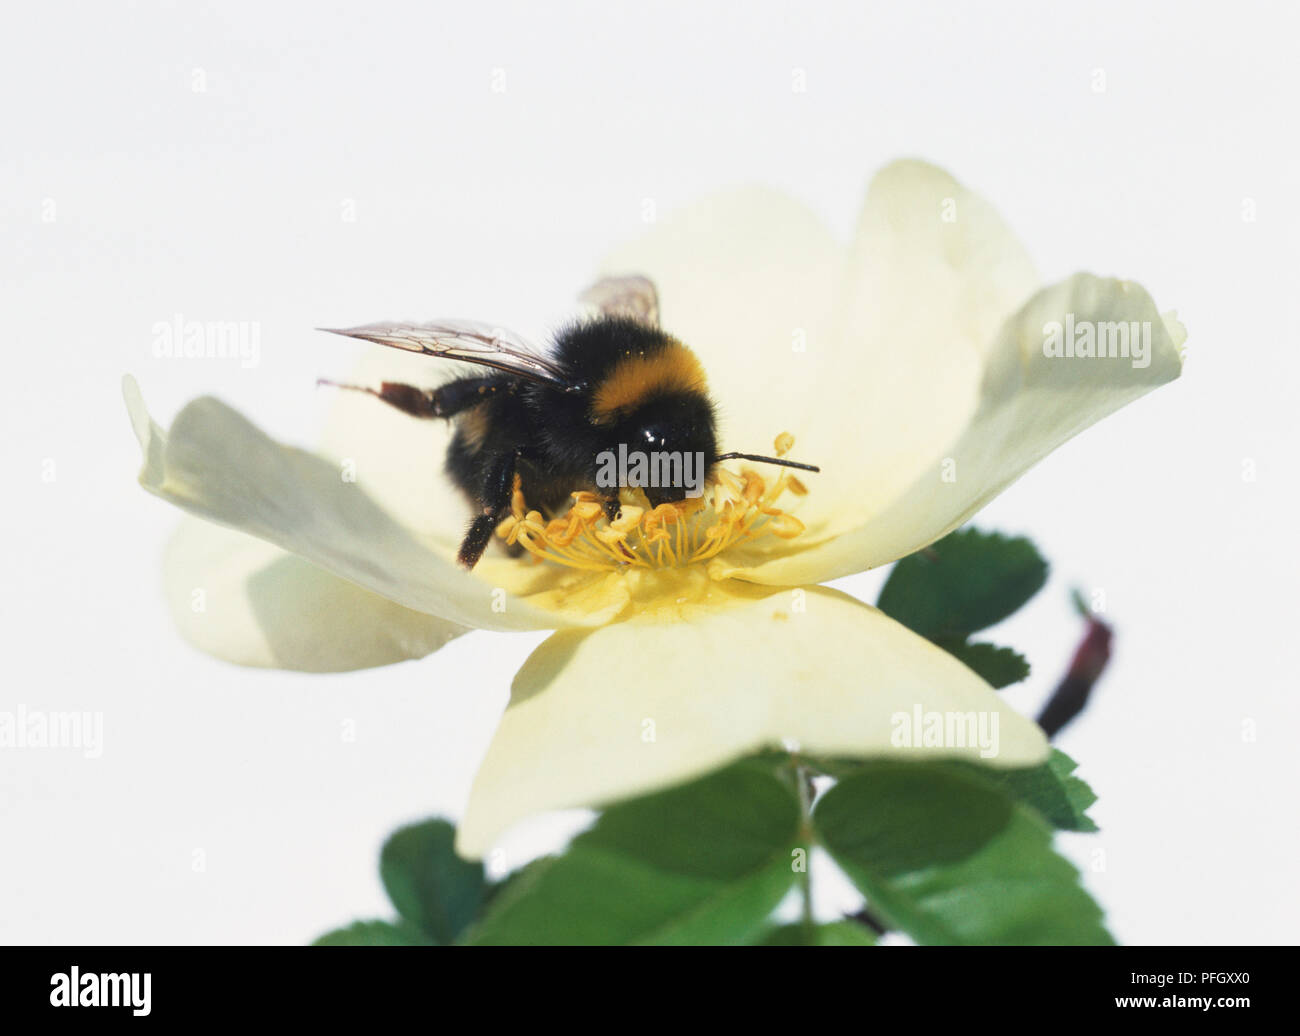 A bee sitting in a flower. - Stock Image